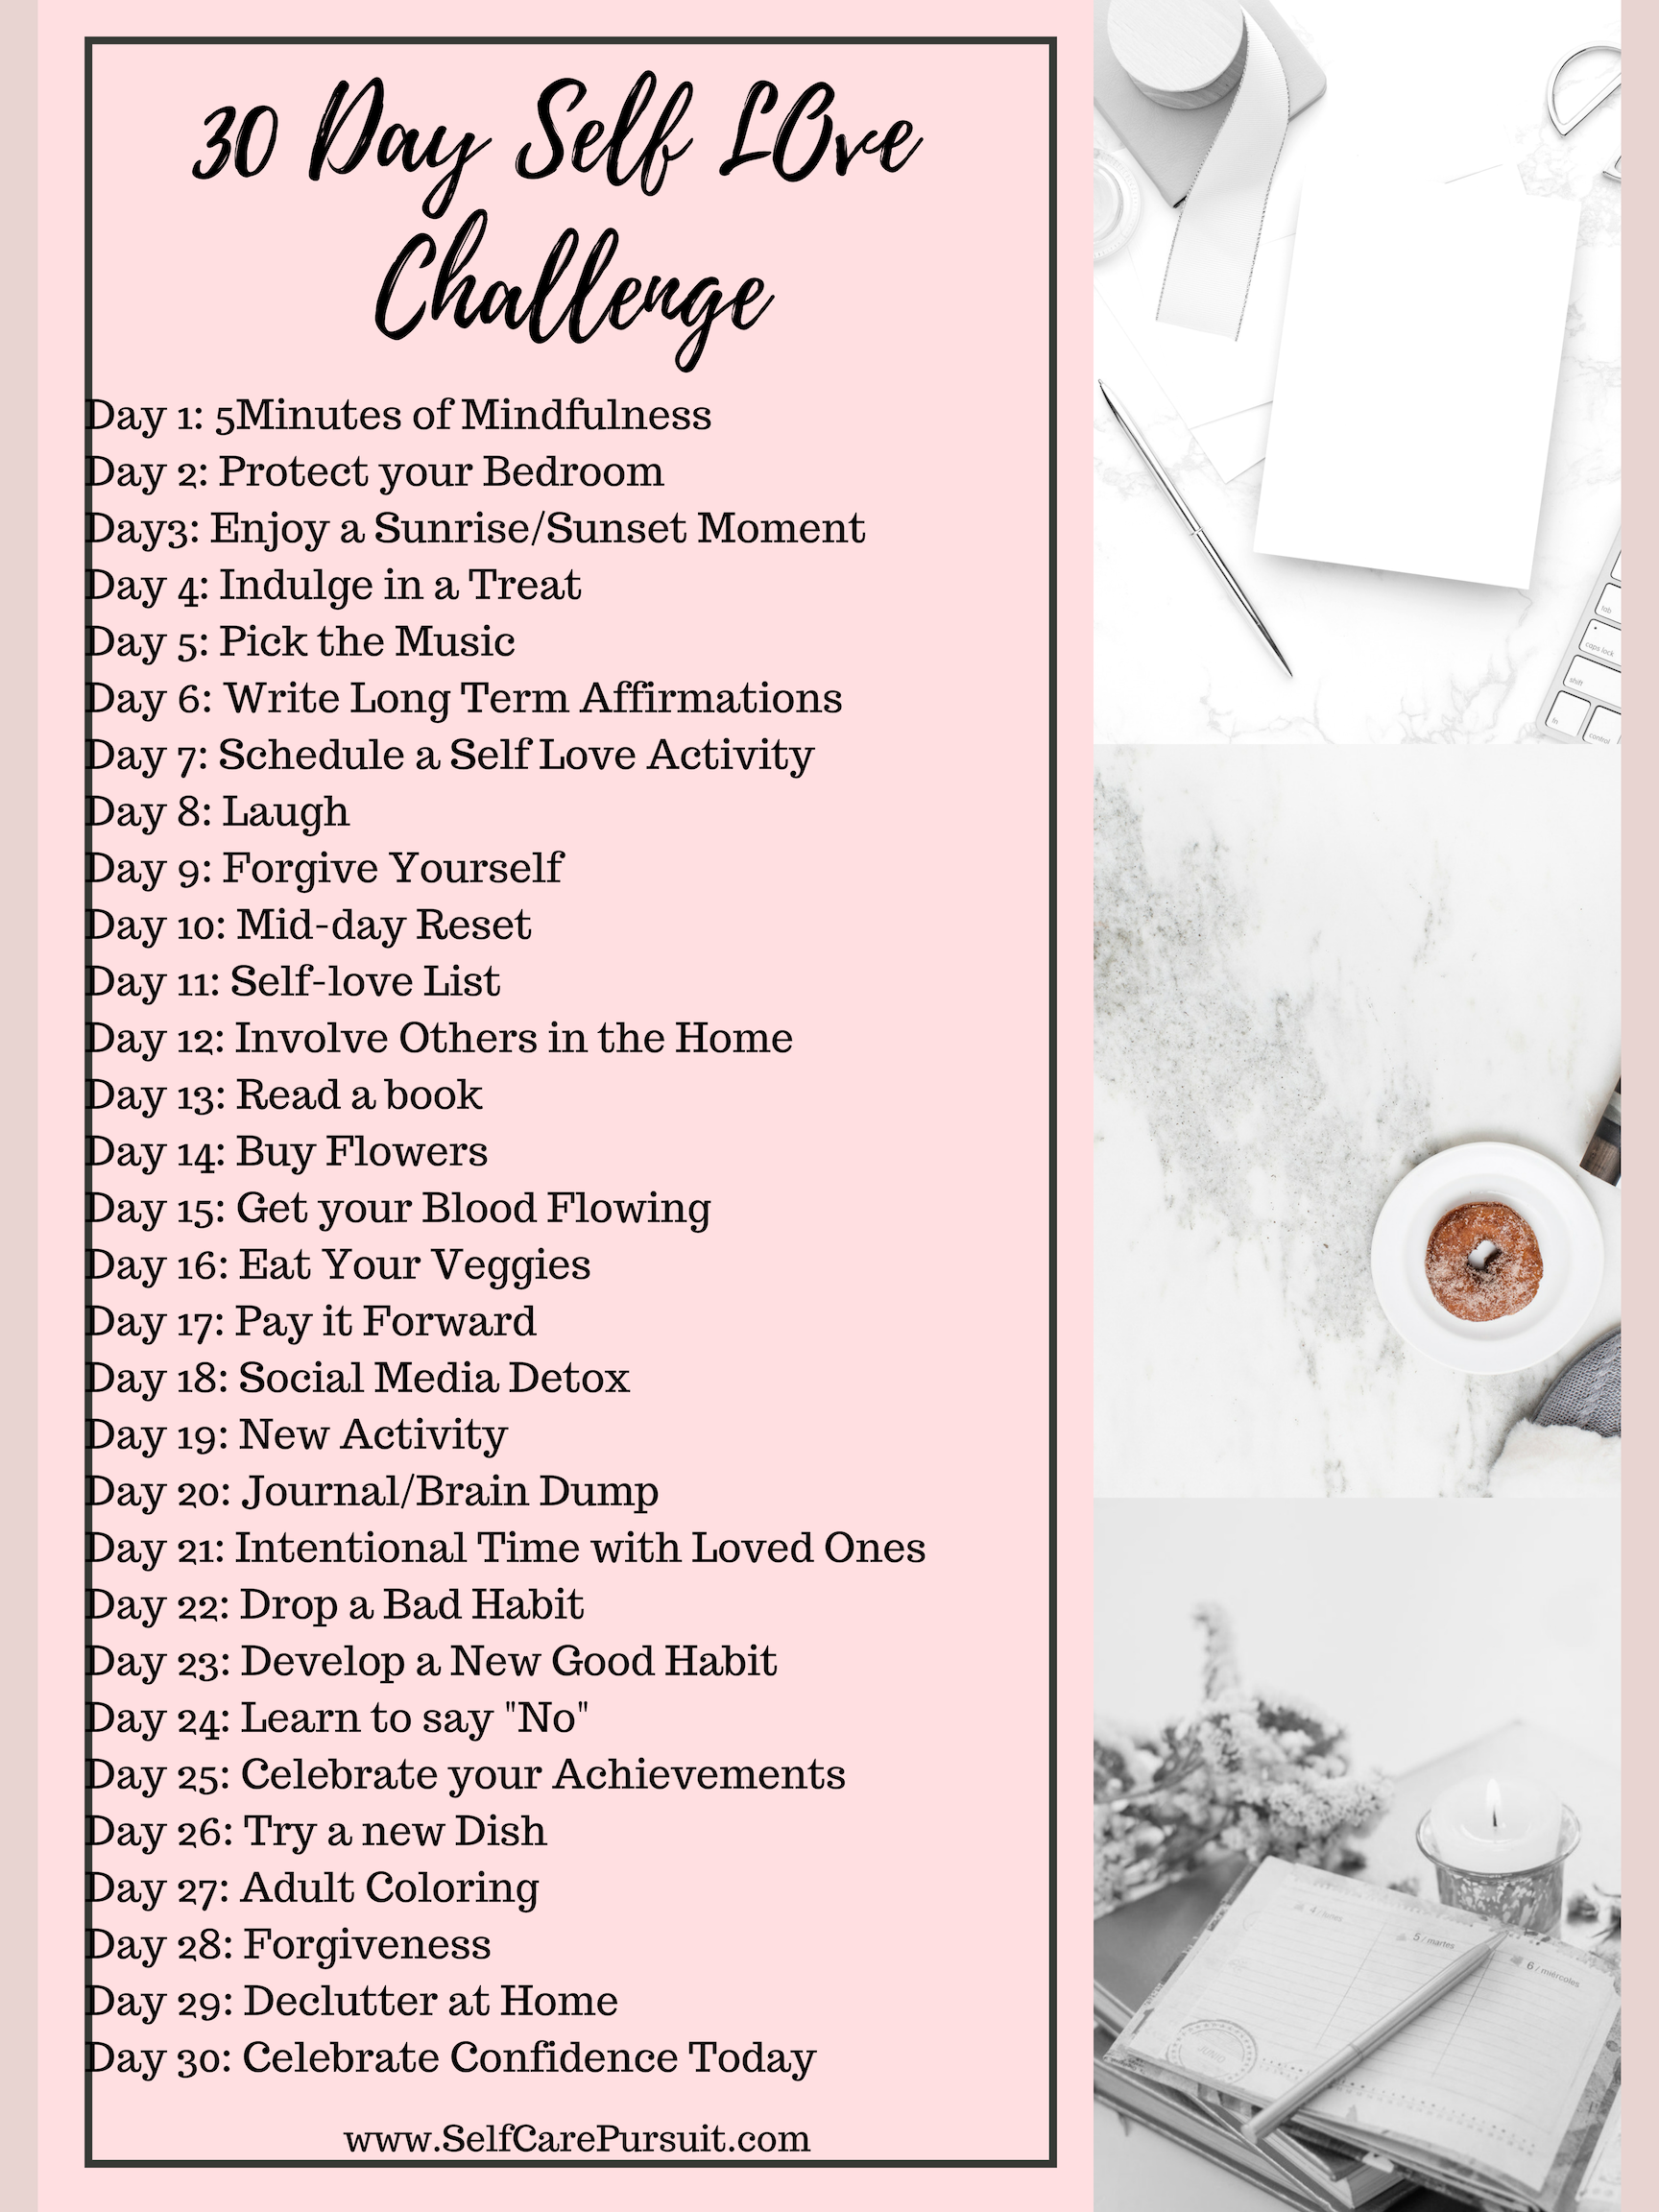 Take This 30 Day Self Love Challenge To Be Intentional